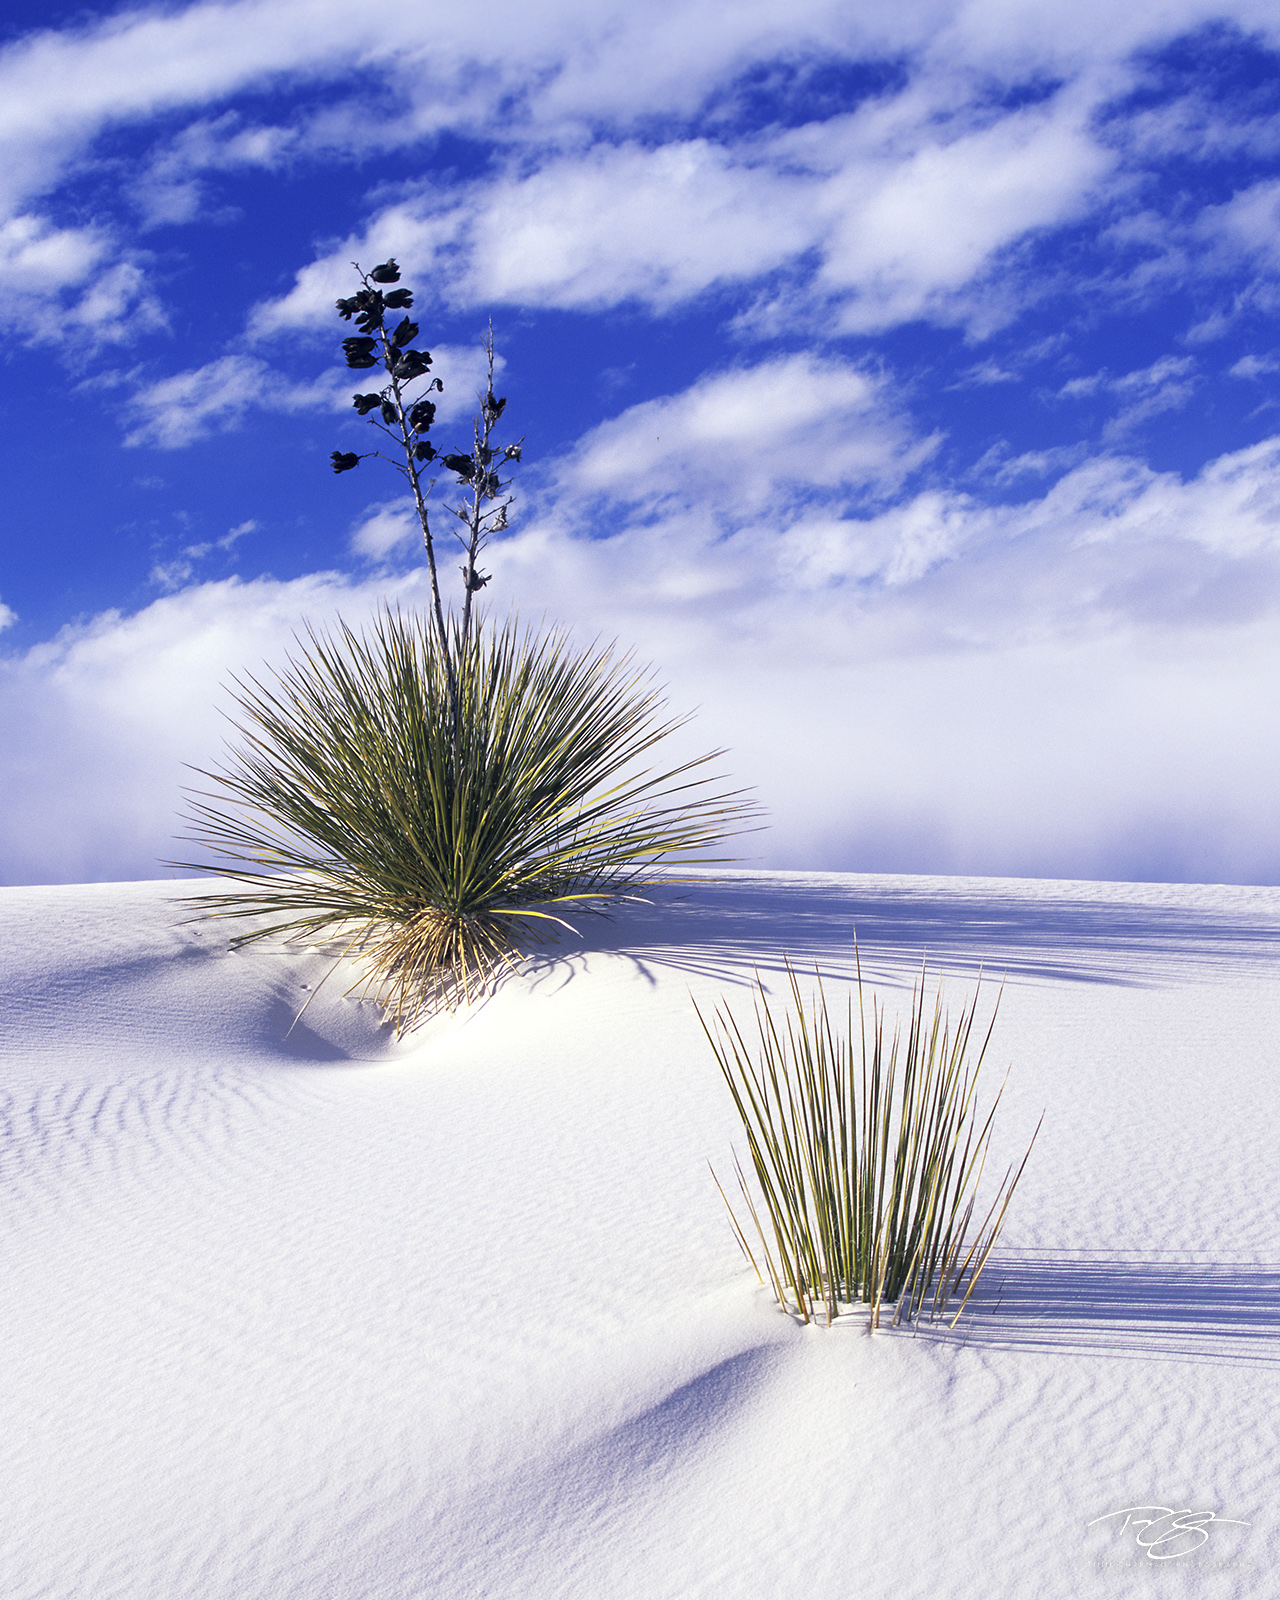 New Mexico, soaptree yucca, yuccas, white sands, white sands national monument, buried alive, snow, sand, white sand, sand dunes, gypsum, clouds, long shadows, struggle for survival, consumed, resilie, photo